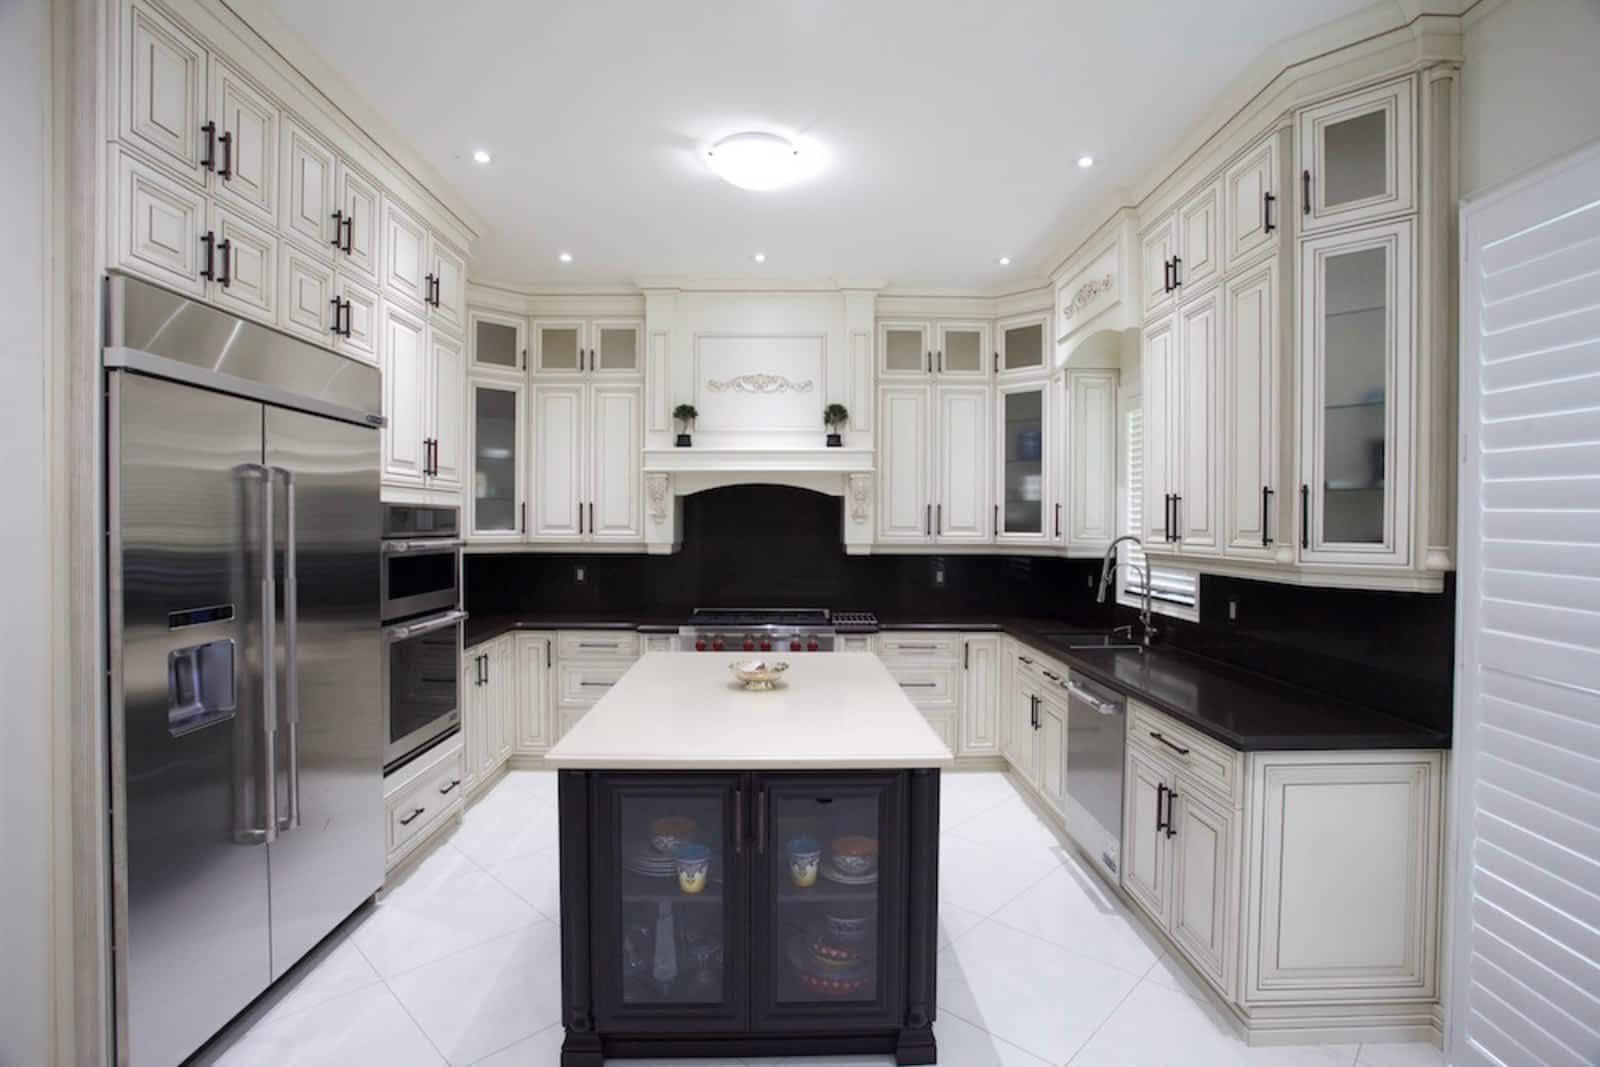 Aman Kitchen Cupboards Brampton Kitchen Cabinets Kitchen Cupboards Home Decor Shops